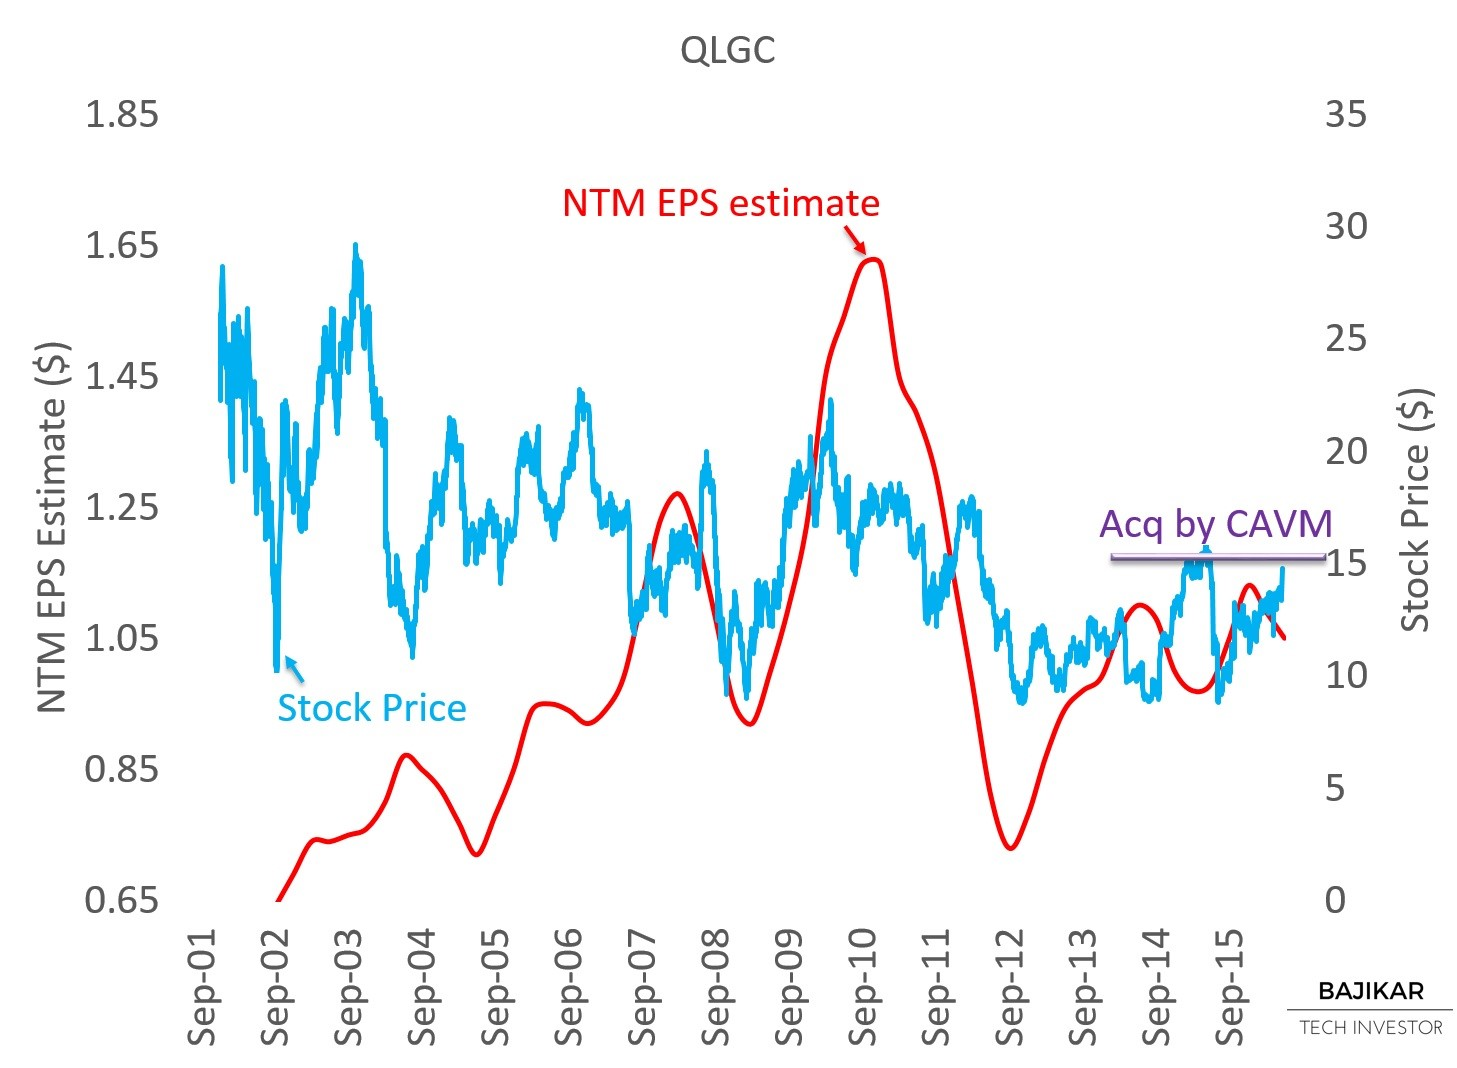 QLGC NTM EPS vs. Stock Price